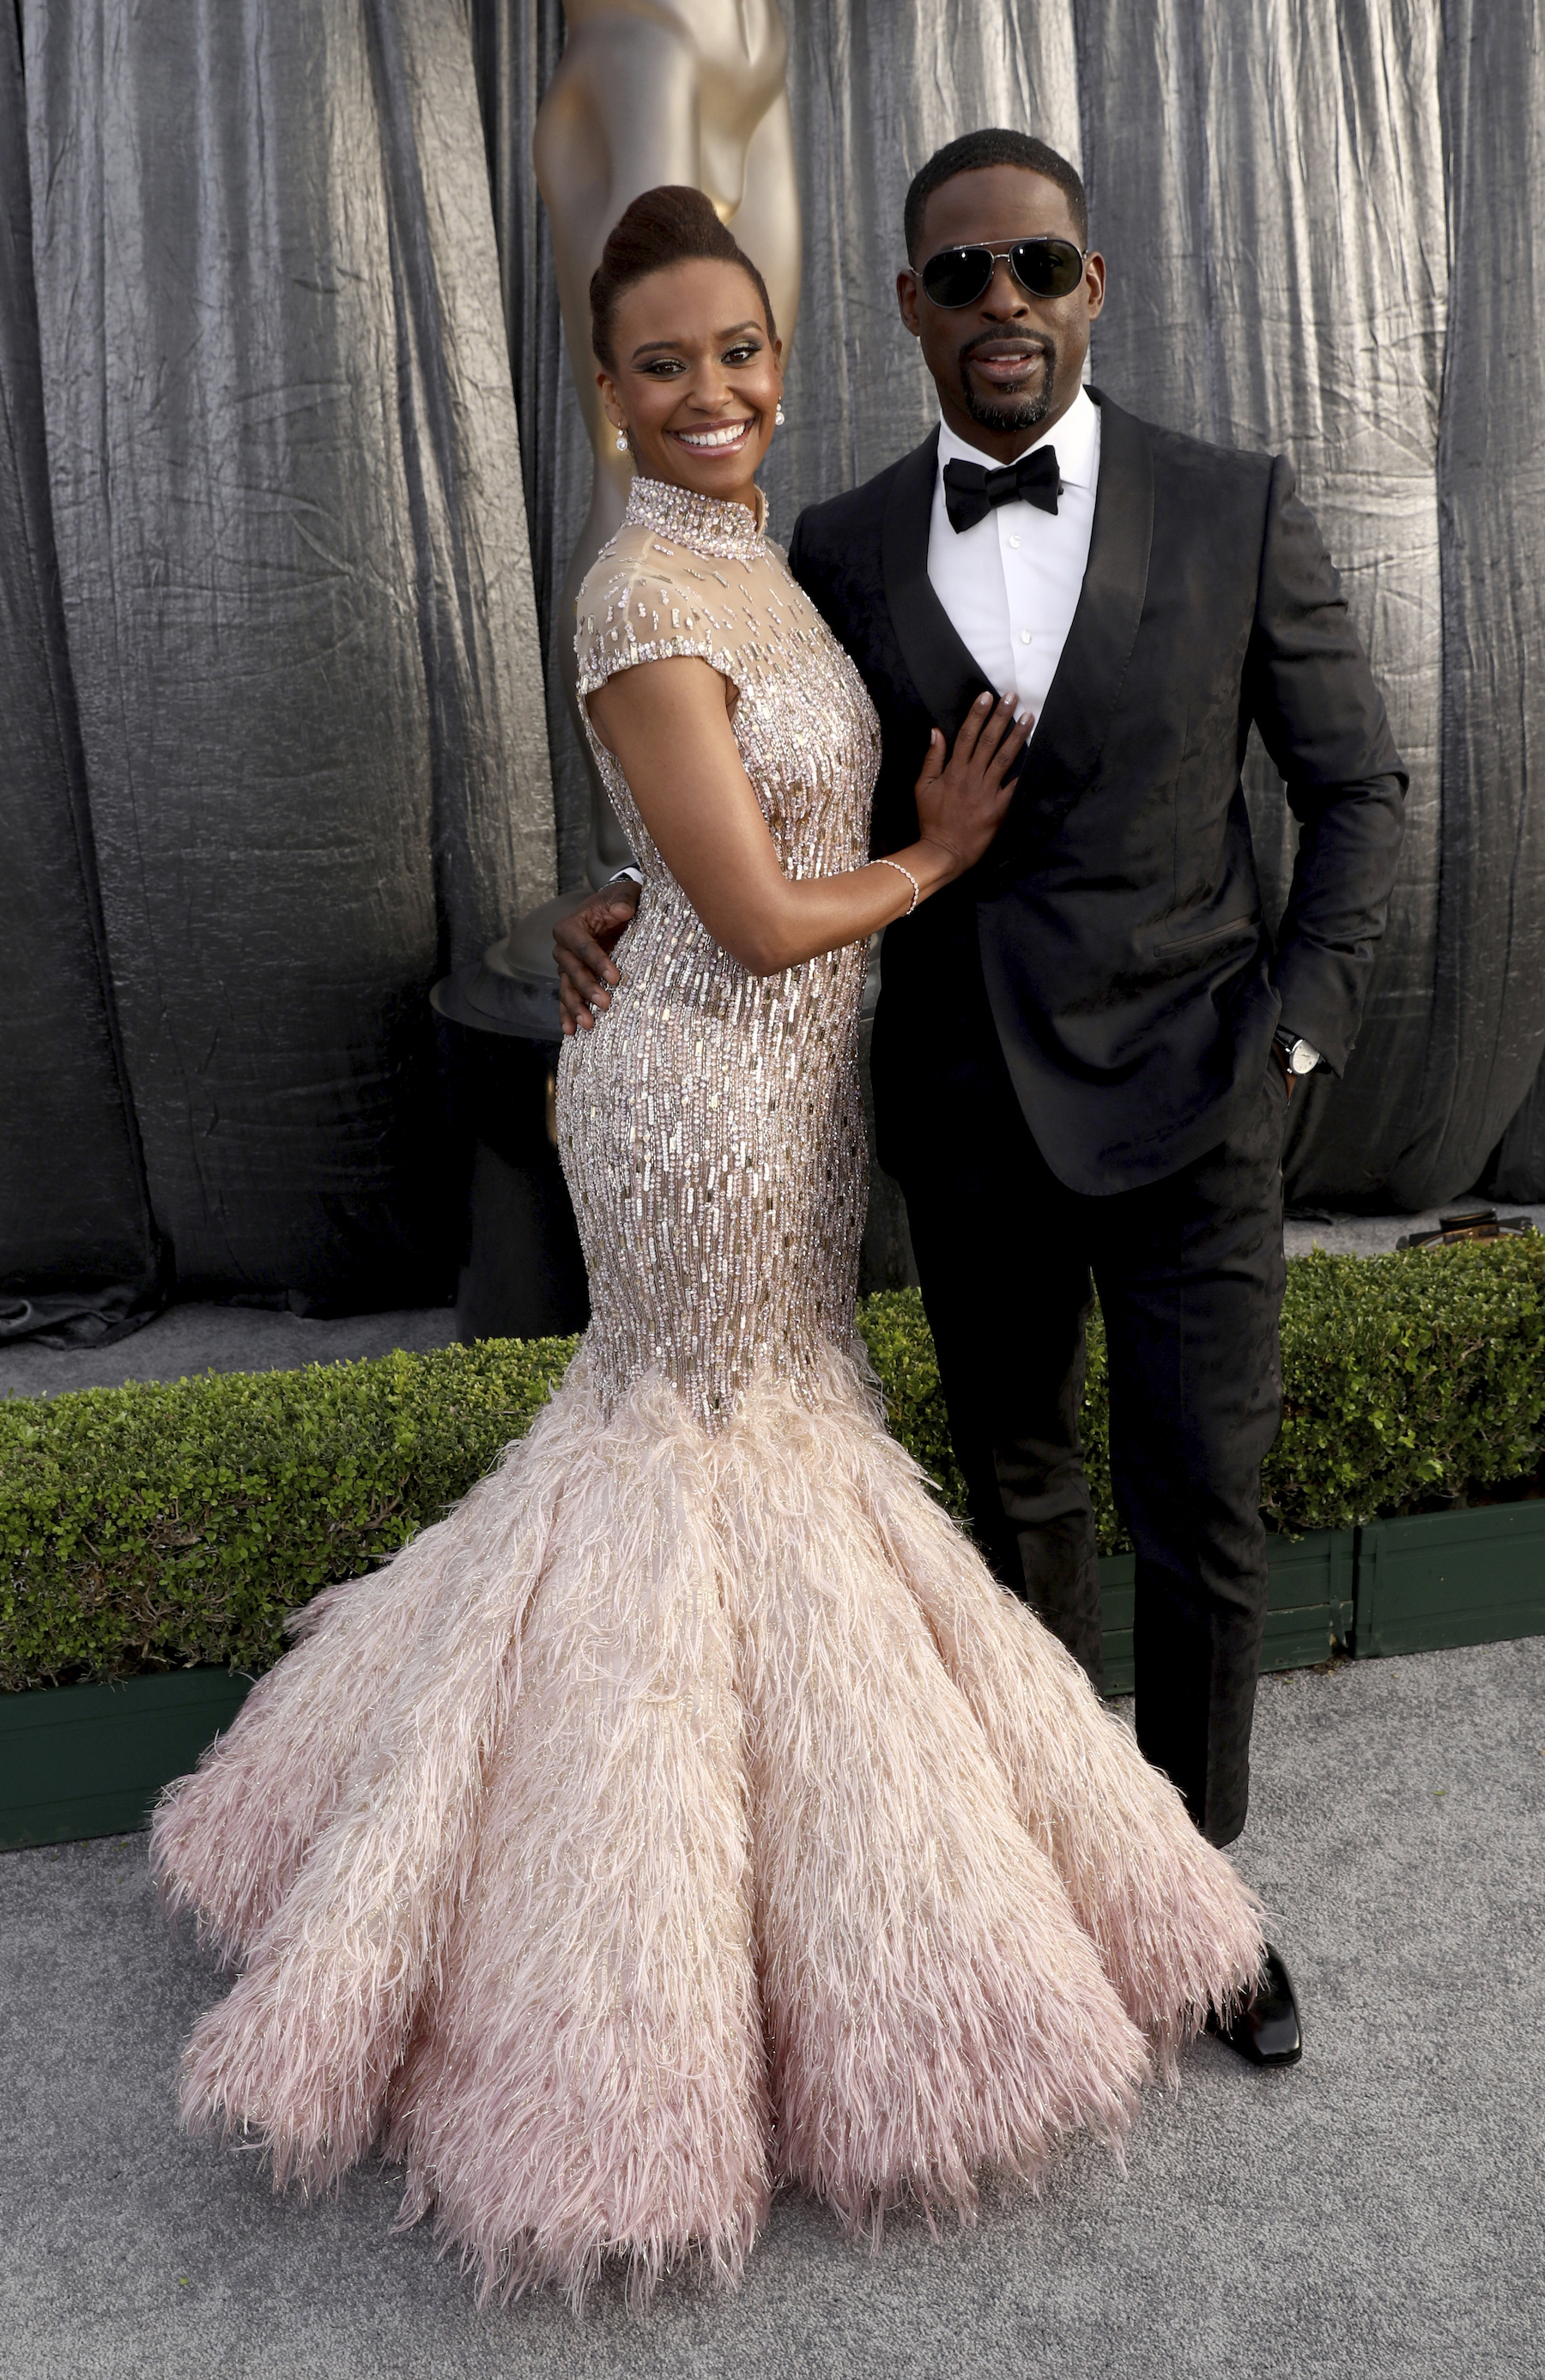 "<div class=""meta image-caption""><div class=""origin-logo origin-image ap""><span>AP</span></div><span class=""caption-text"">Ryan Michelle Bathe, left, and Sterling K. Brown arrive at the 25th annual Screen Actors Guild Awards at the Shrine Auditorium & Expo Hall on Sunday, Jan. 27, 2019, in Los Angeles. (Matt Sayles/Invision/AP)</span></div>"